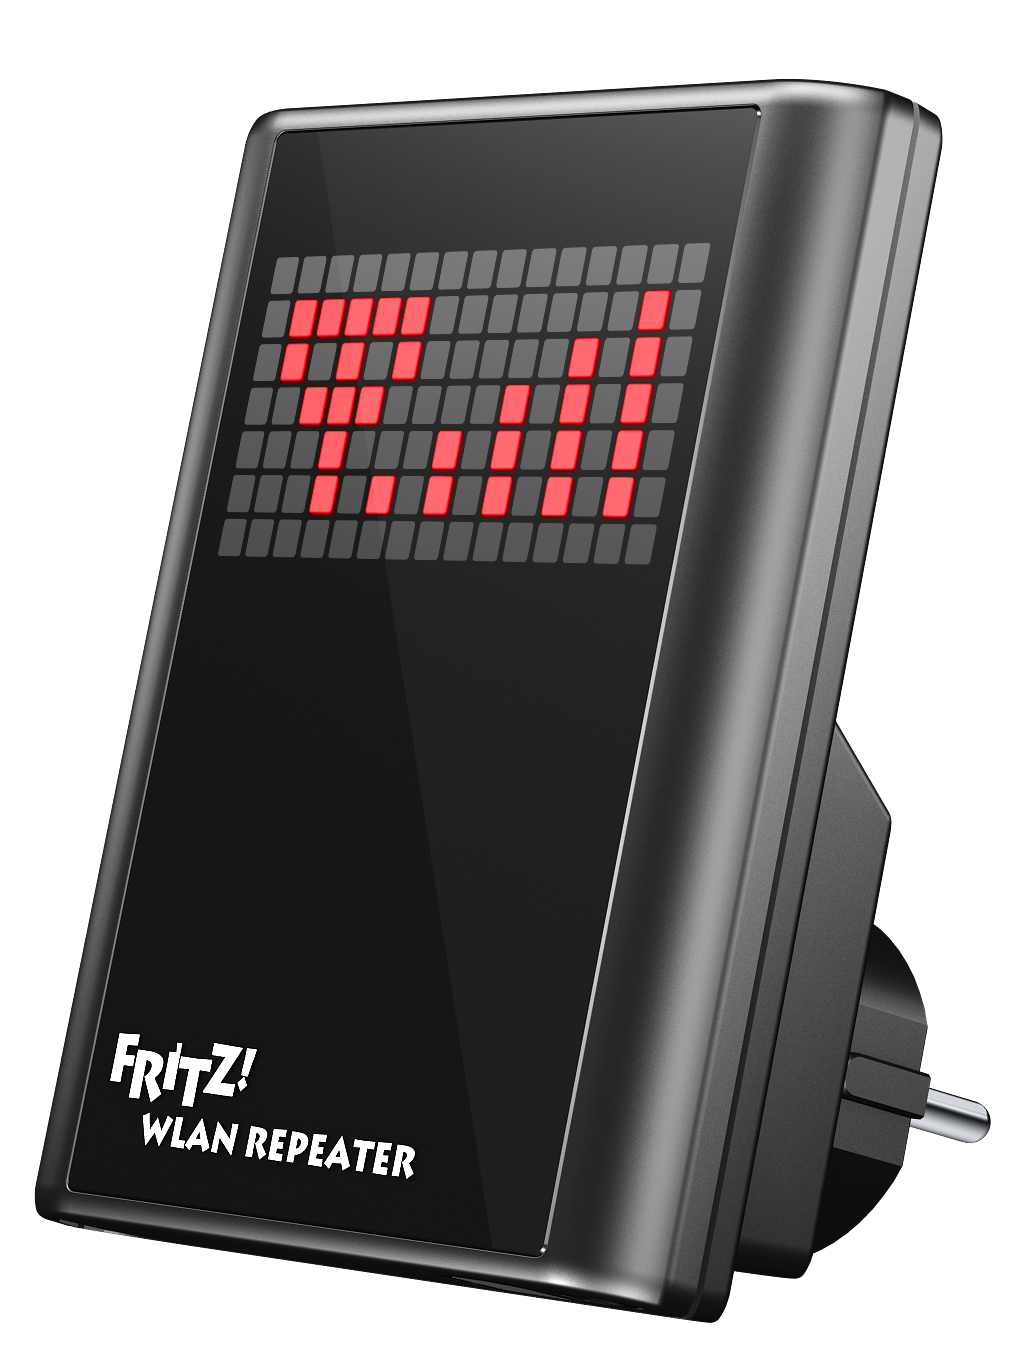 avm-fritz-wlan-repeater1.jpg